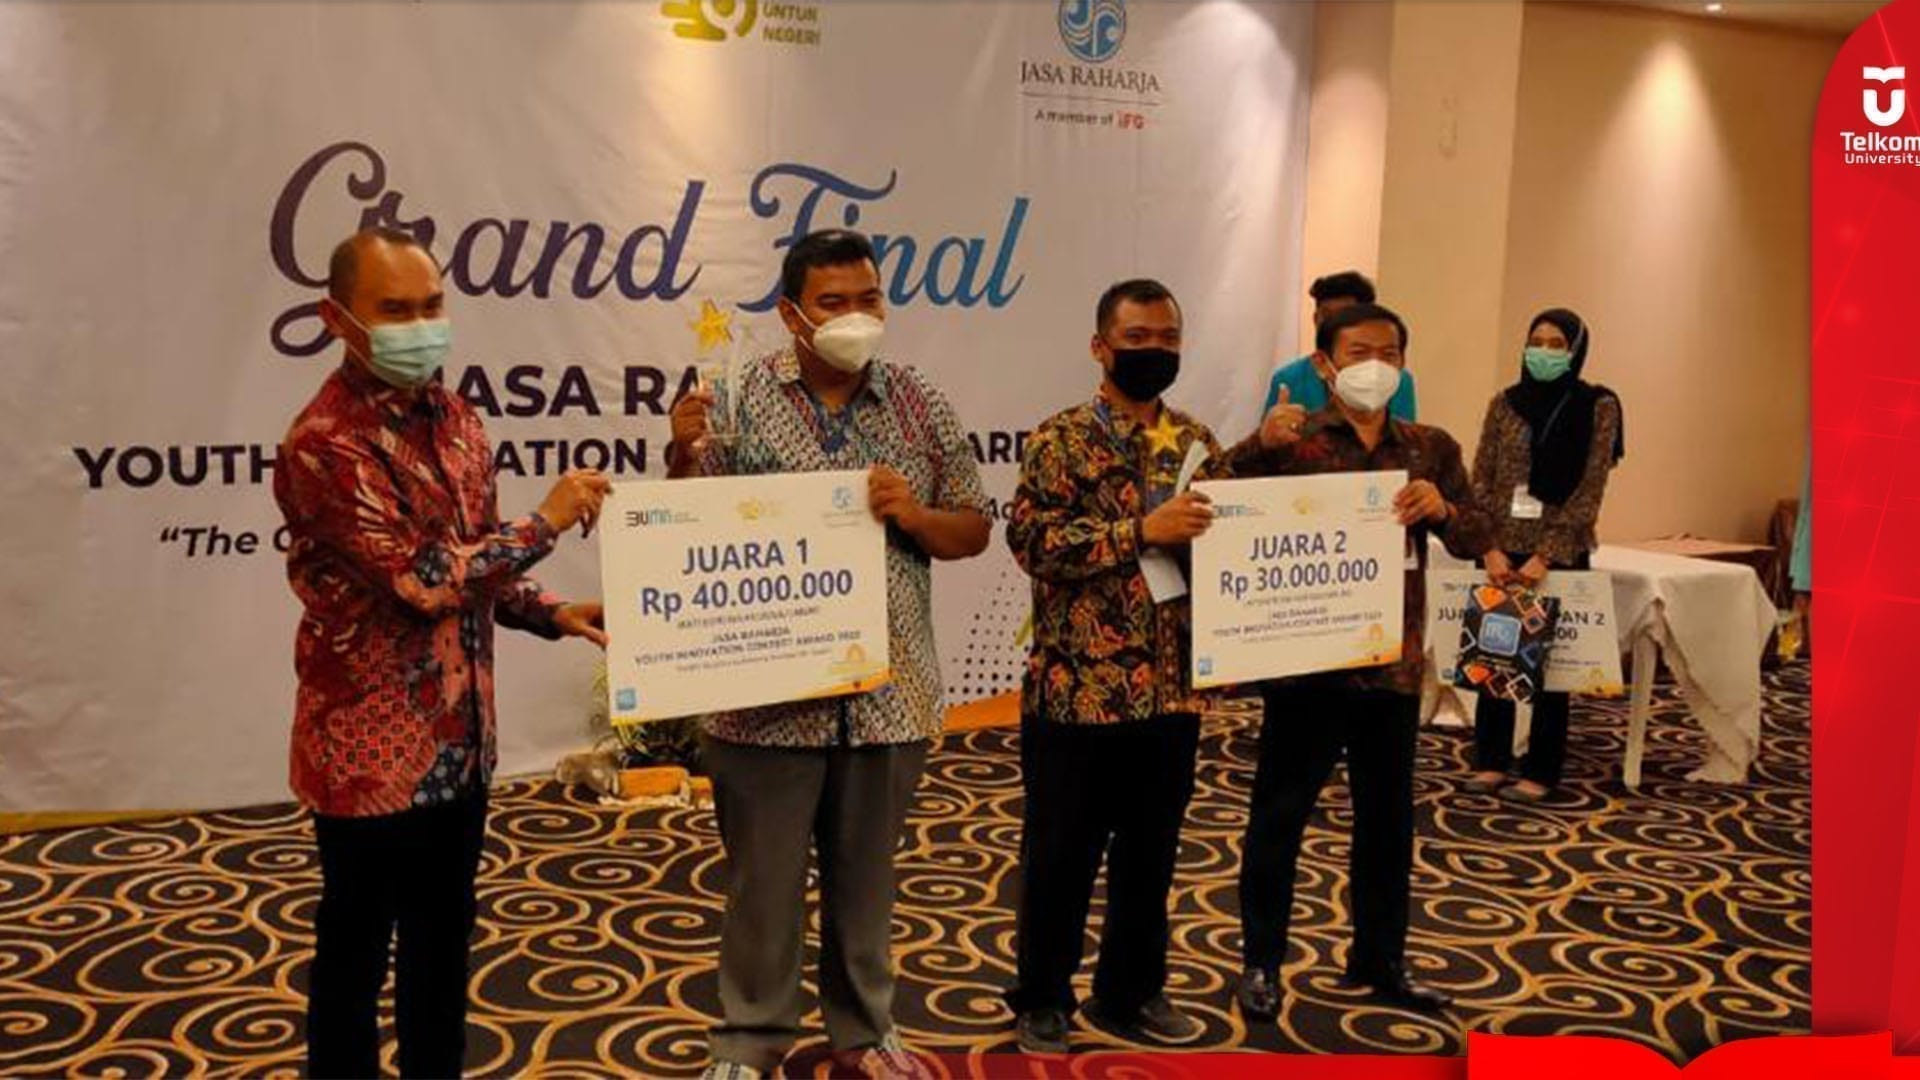 Brainstat Jadi Juara Youth Innovation Jasa Raharja